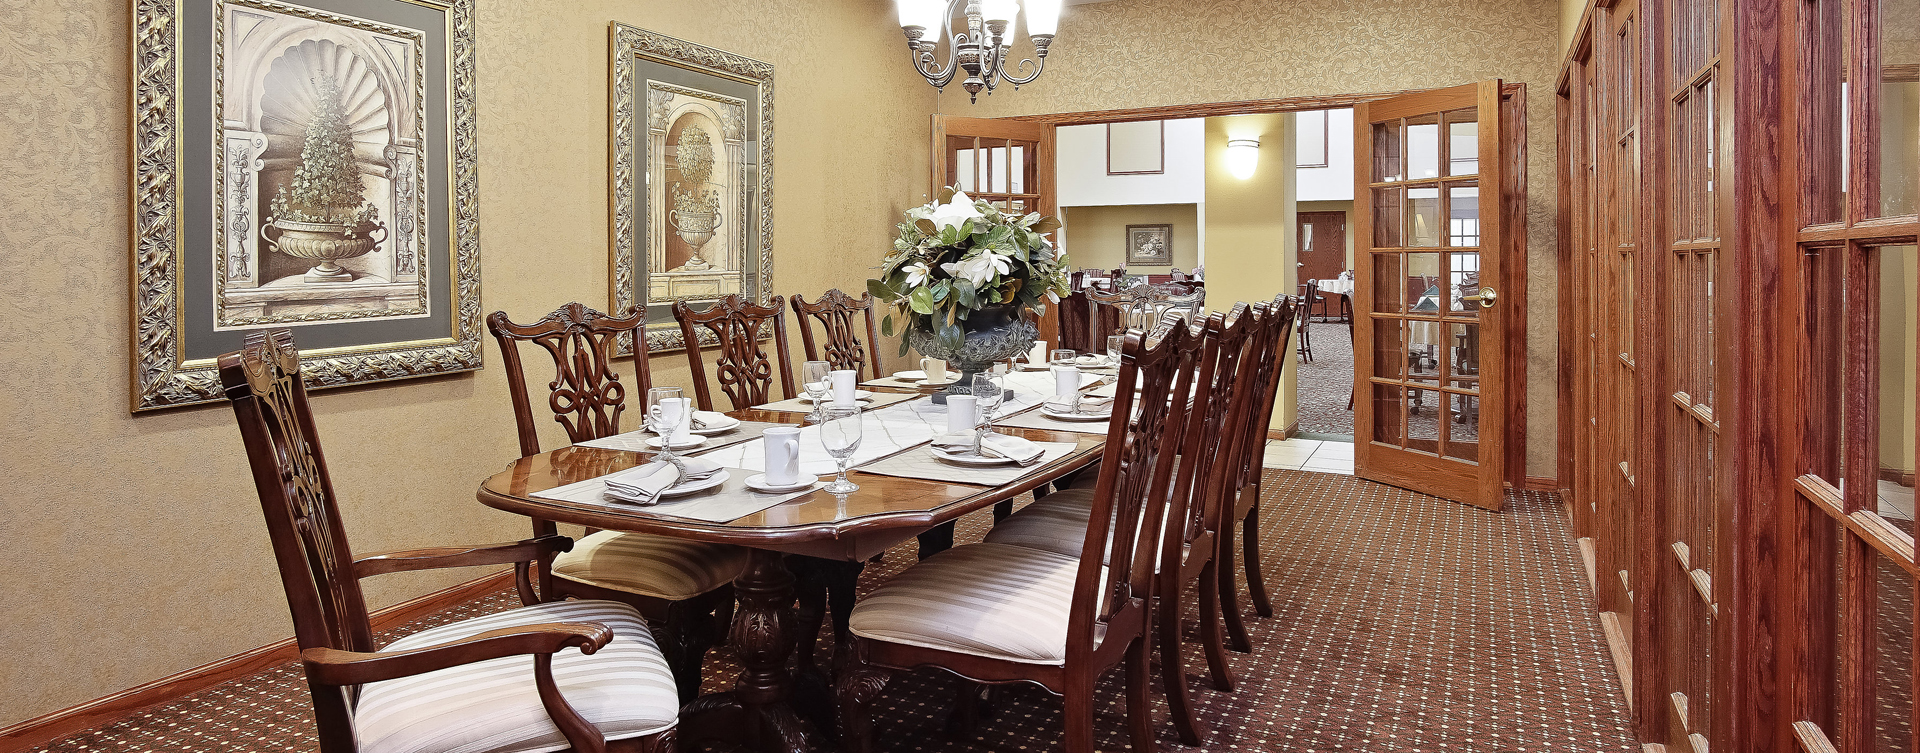 Food is best when shared with family and friends in the private dining room at Bickford of Raytown